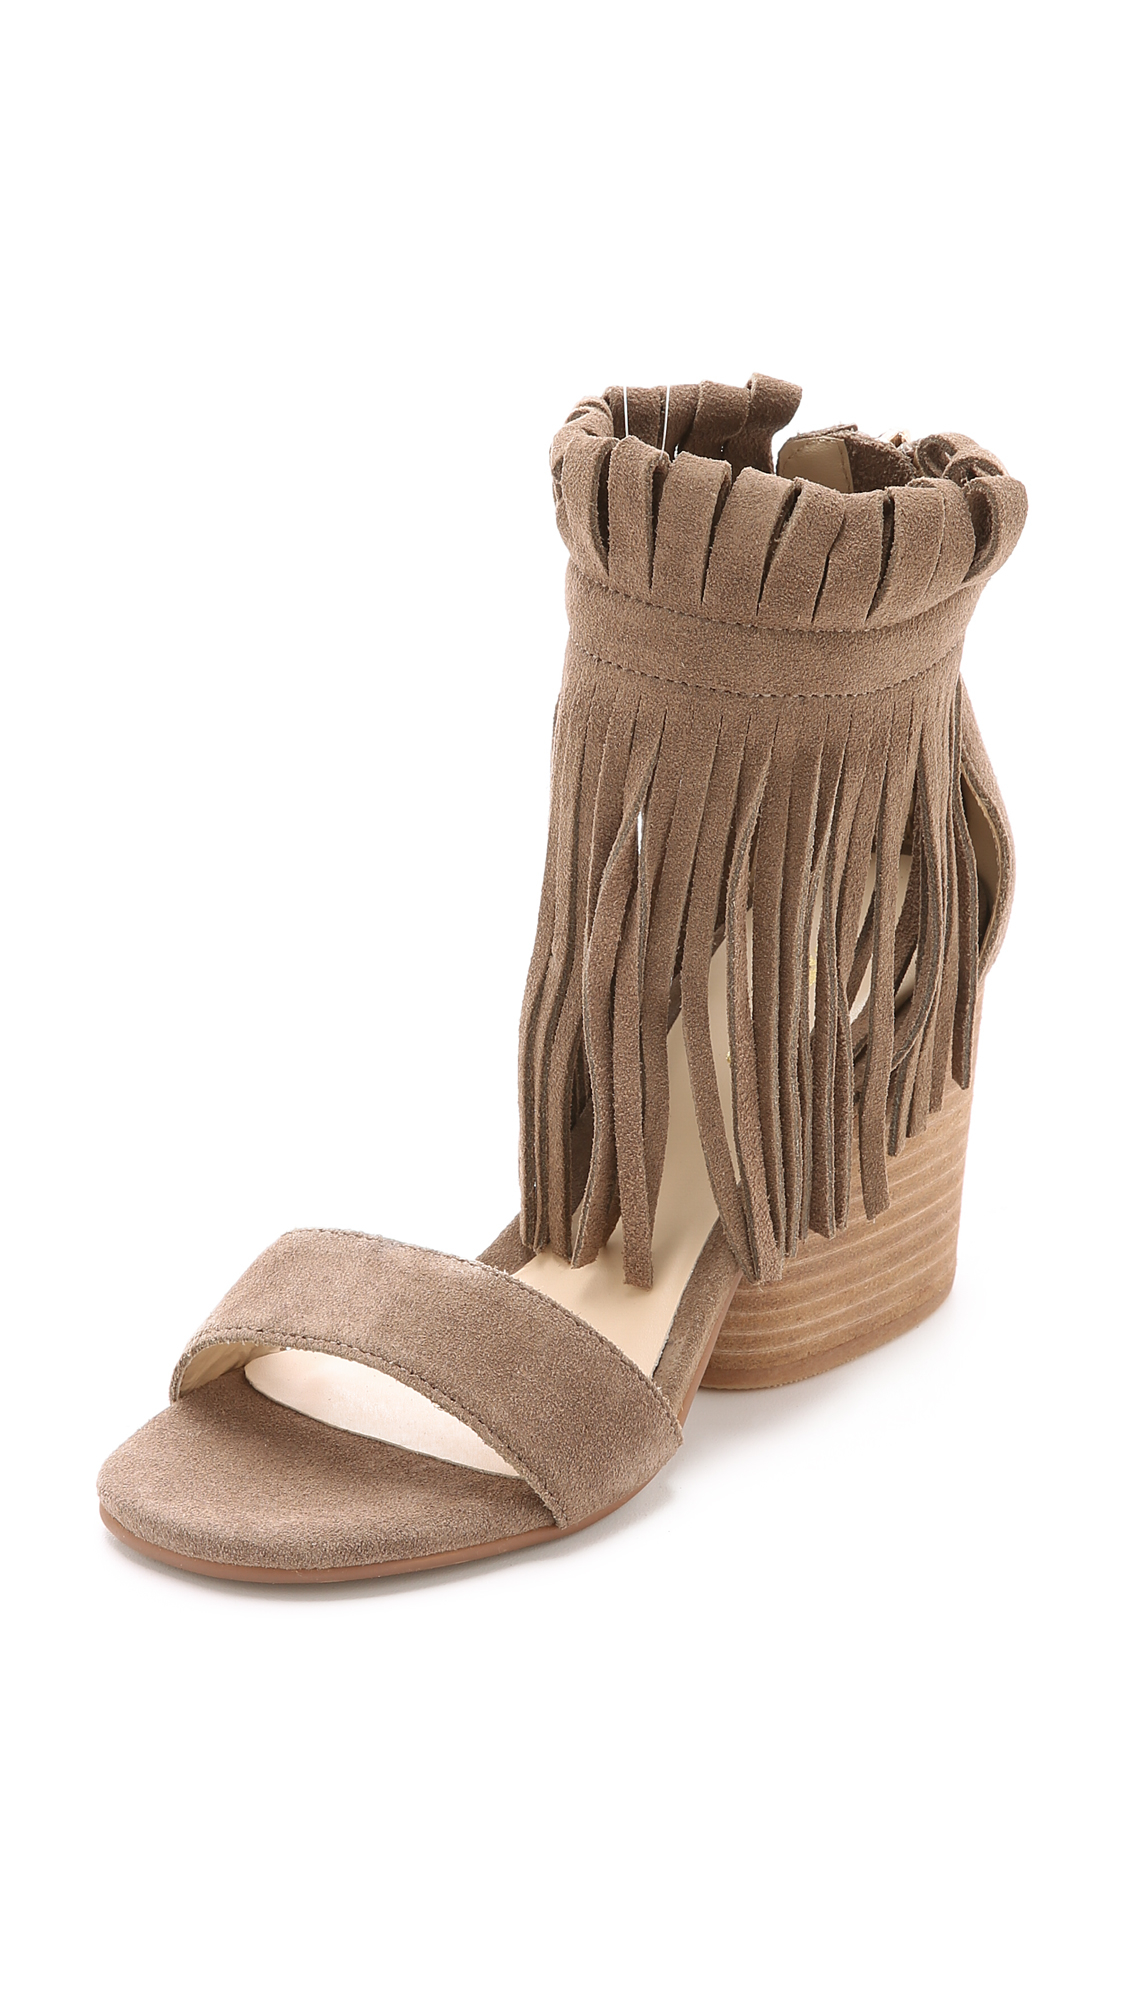 3e988be0784a Lyst - Matiko Morgan Fringe Suede Sandals - White in Brown